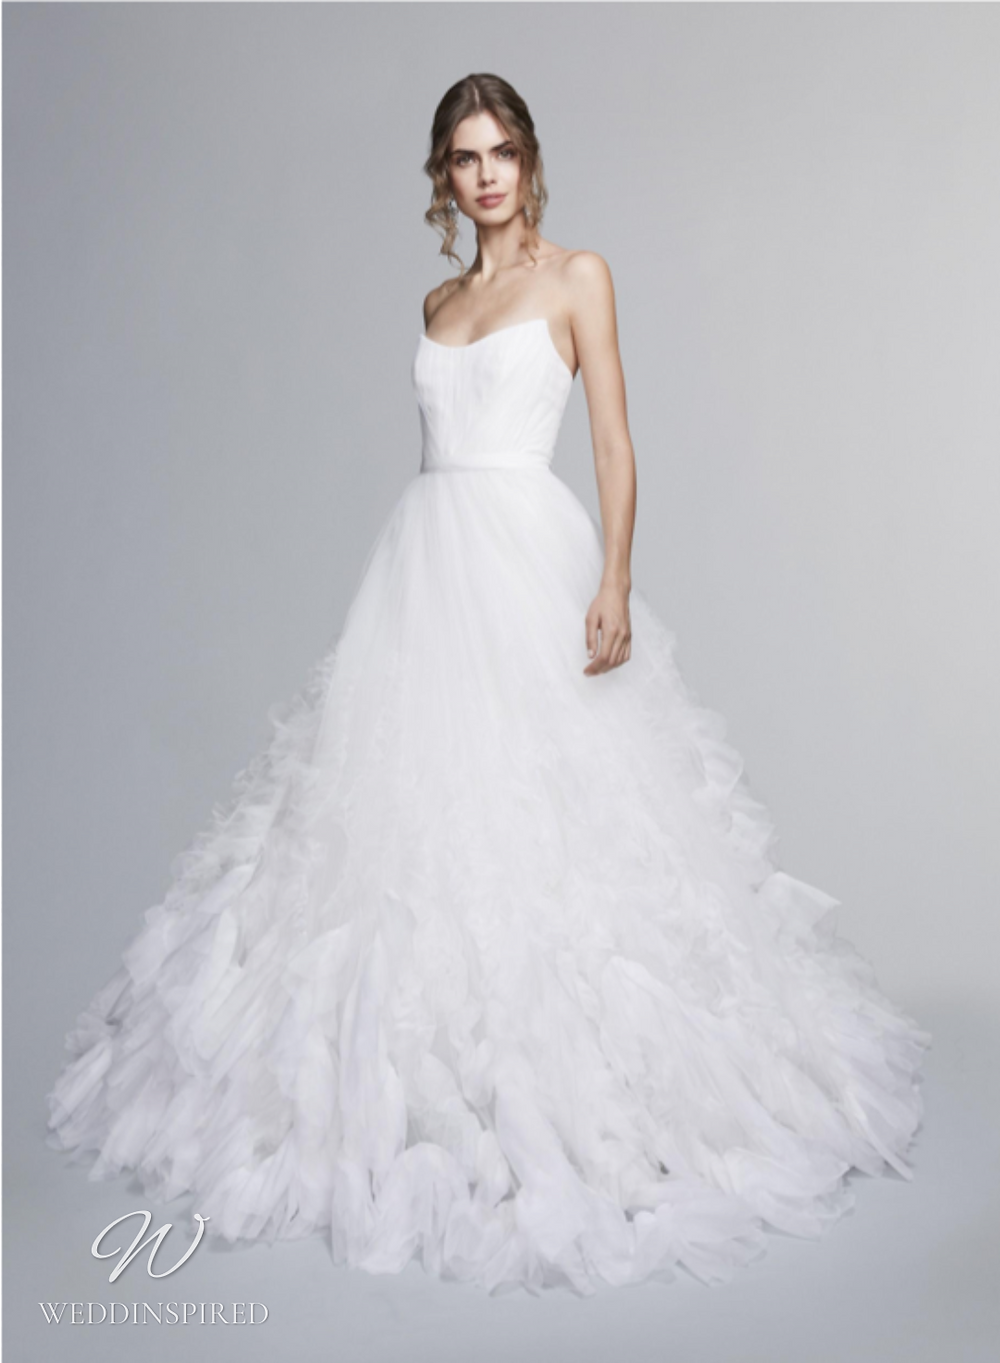 A Marchesa Notte Fall 2021 strapless tulle ball gown wedding dress with a ruffle skirt